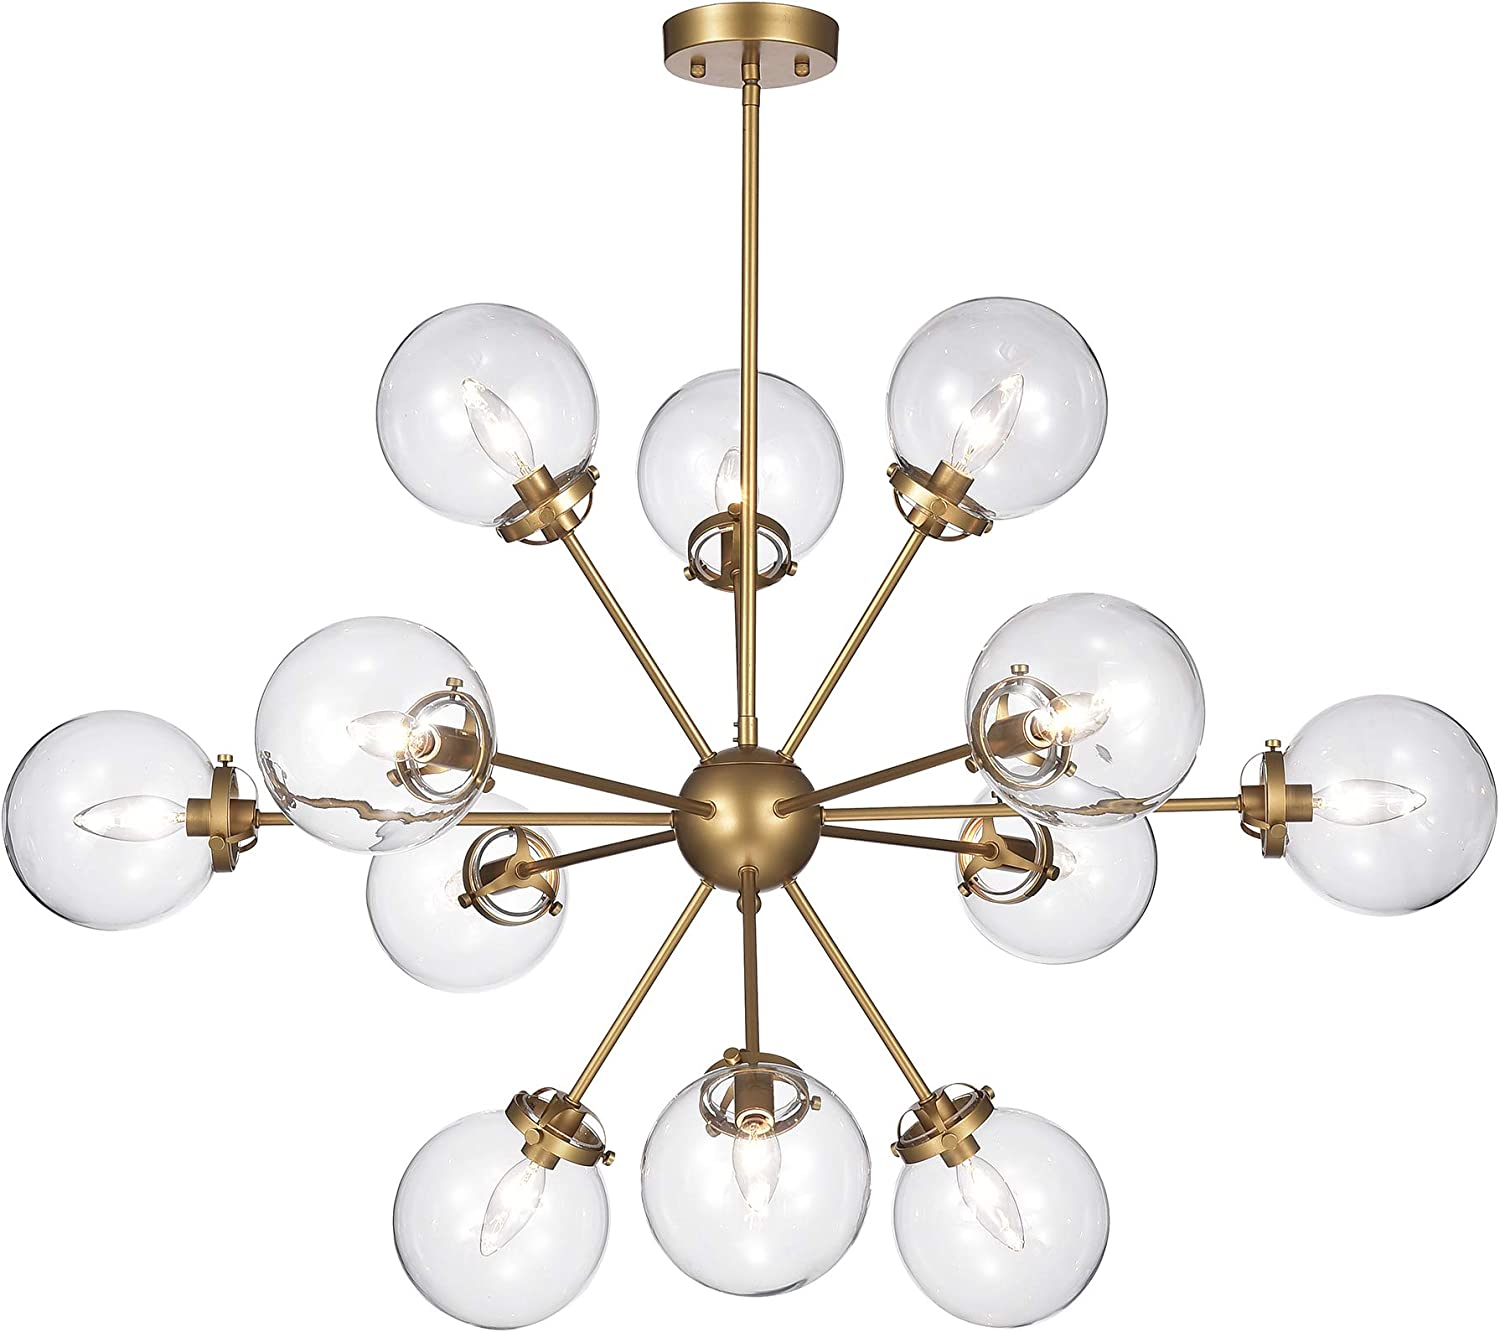 Warehouse Of Tiffany Hm108 12 Masakee 12 Light Gold Sputnik Style Glass Sphere Shades Chandelier Yellow Amazon Com